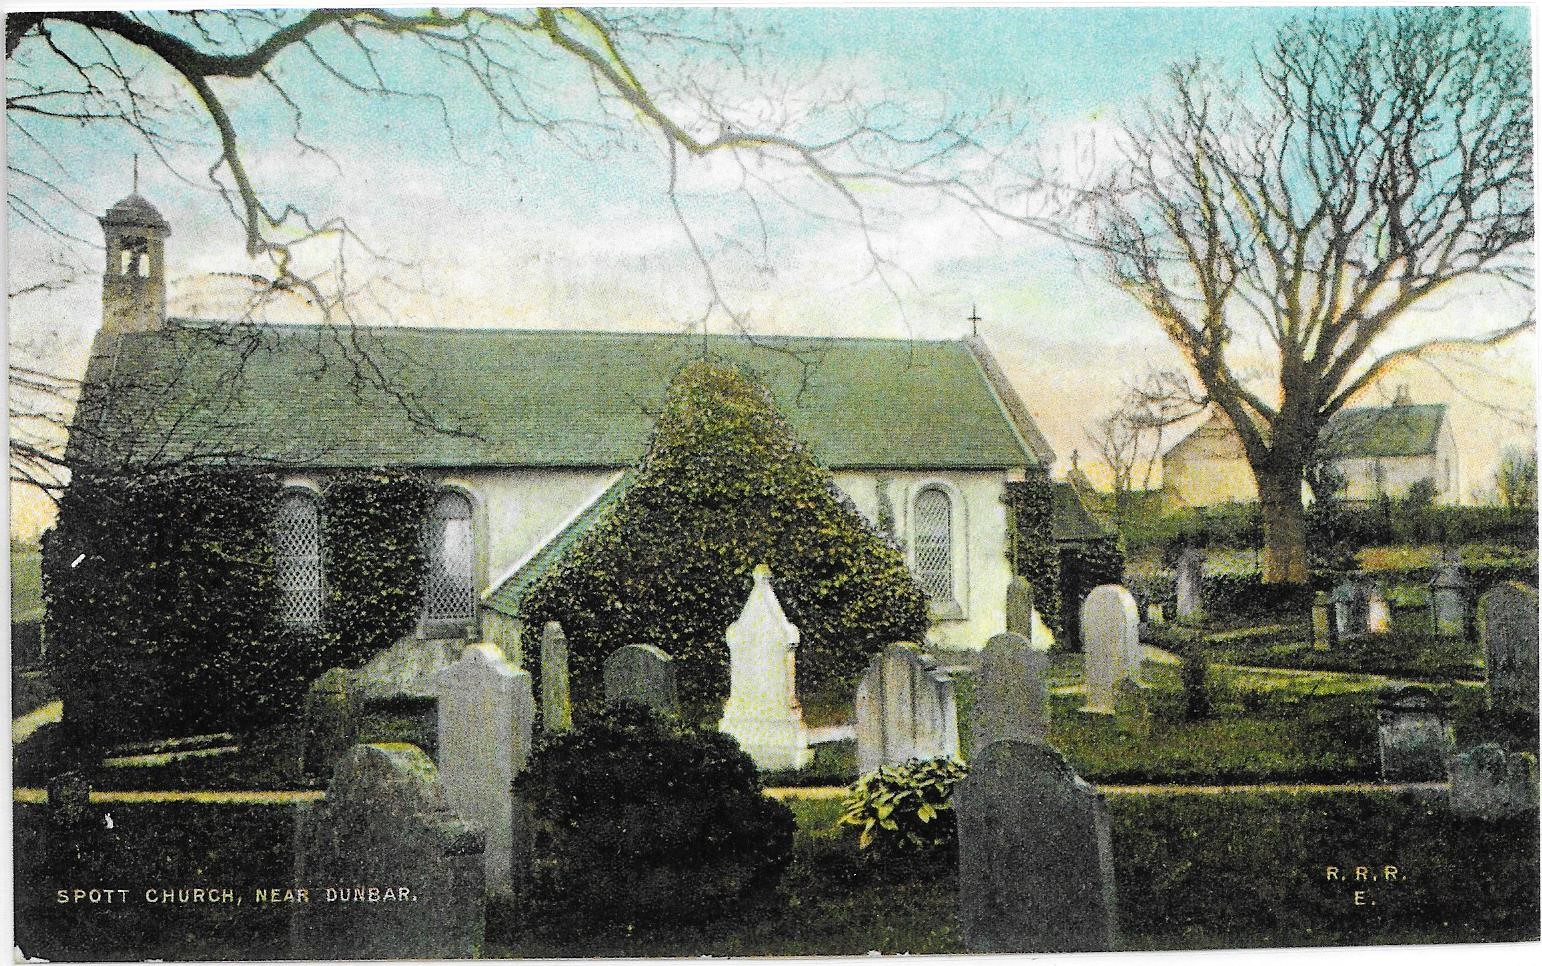 1907-photo-of-Spott-church.jpg